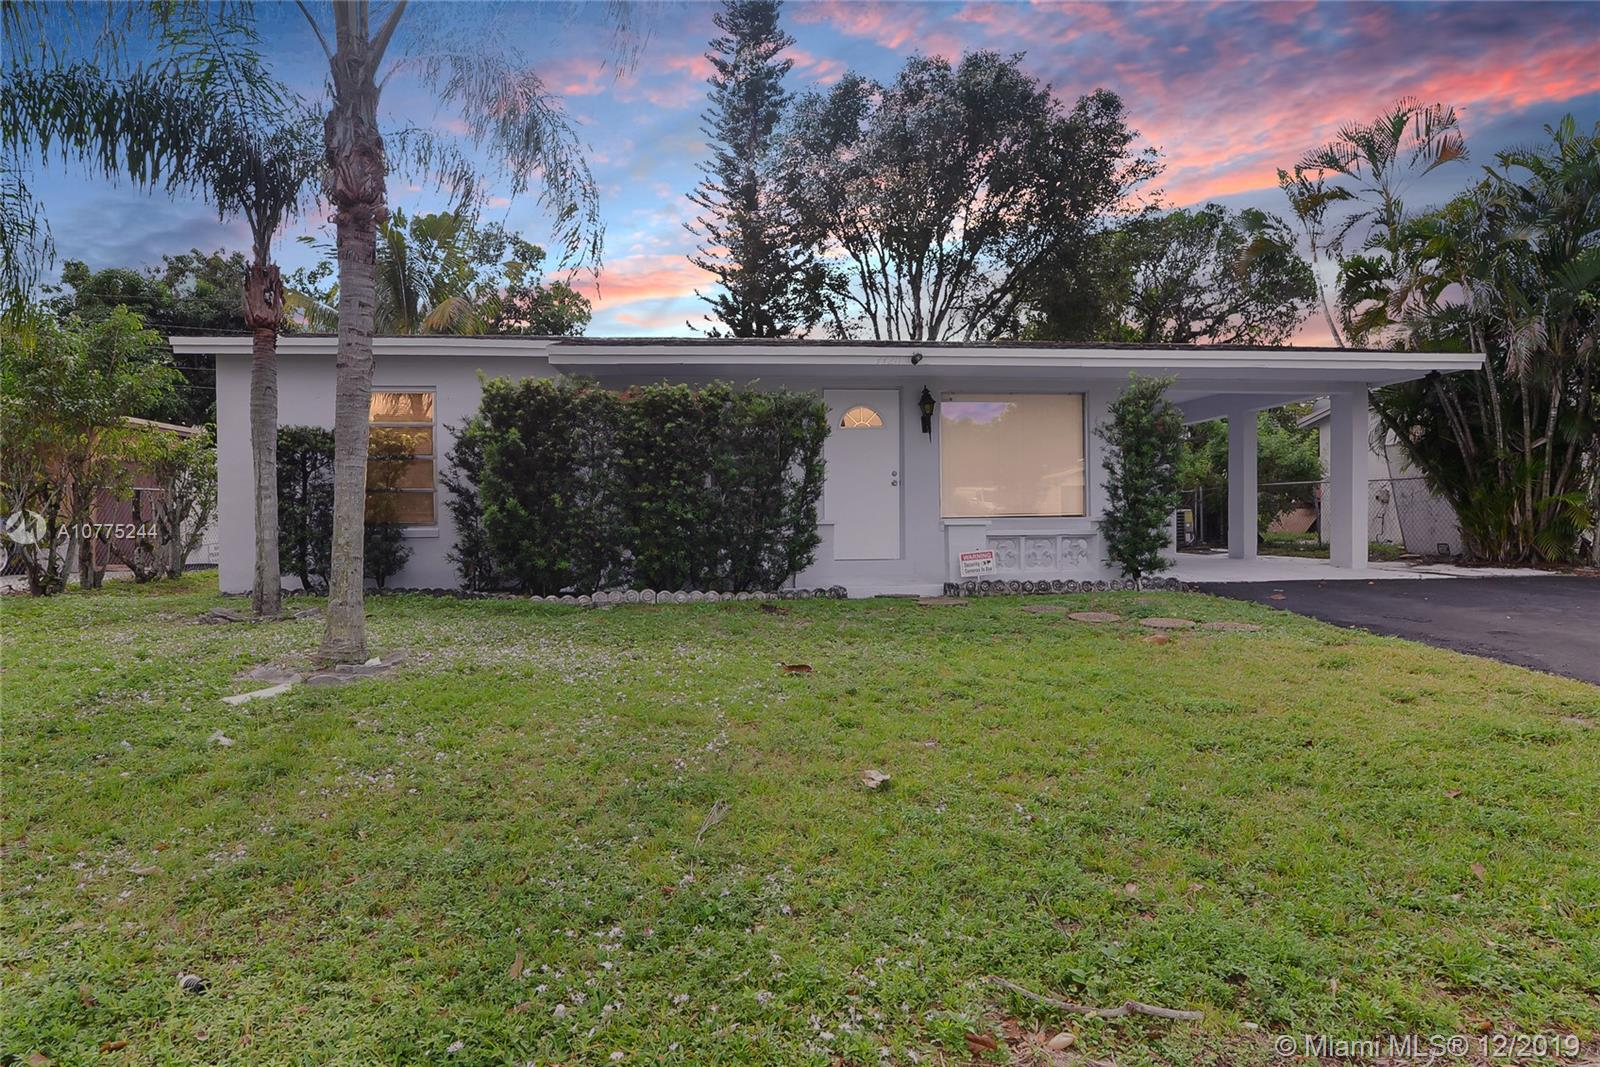 Updated 4 bedroom 2 bath home in the heart of Lauderhill. Property features updated kitchen & baths, stainless steel appliances, tile flooring throughout the home, open layout, covered carport and a huge fenced in backyard! This property makes for a truly great family home! Easy to show.